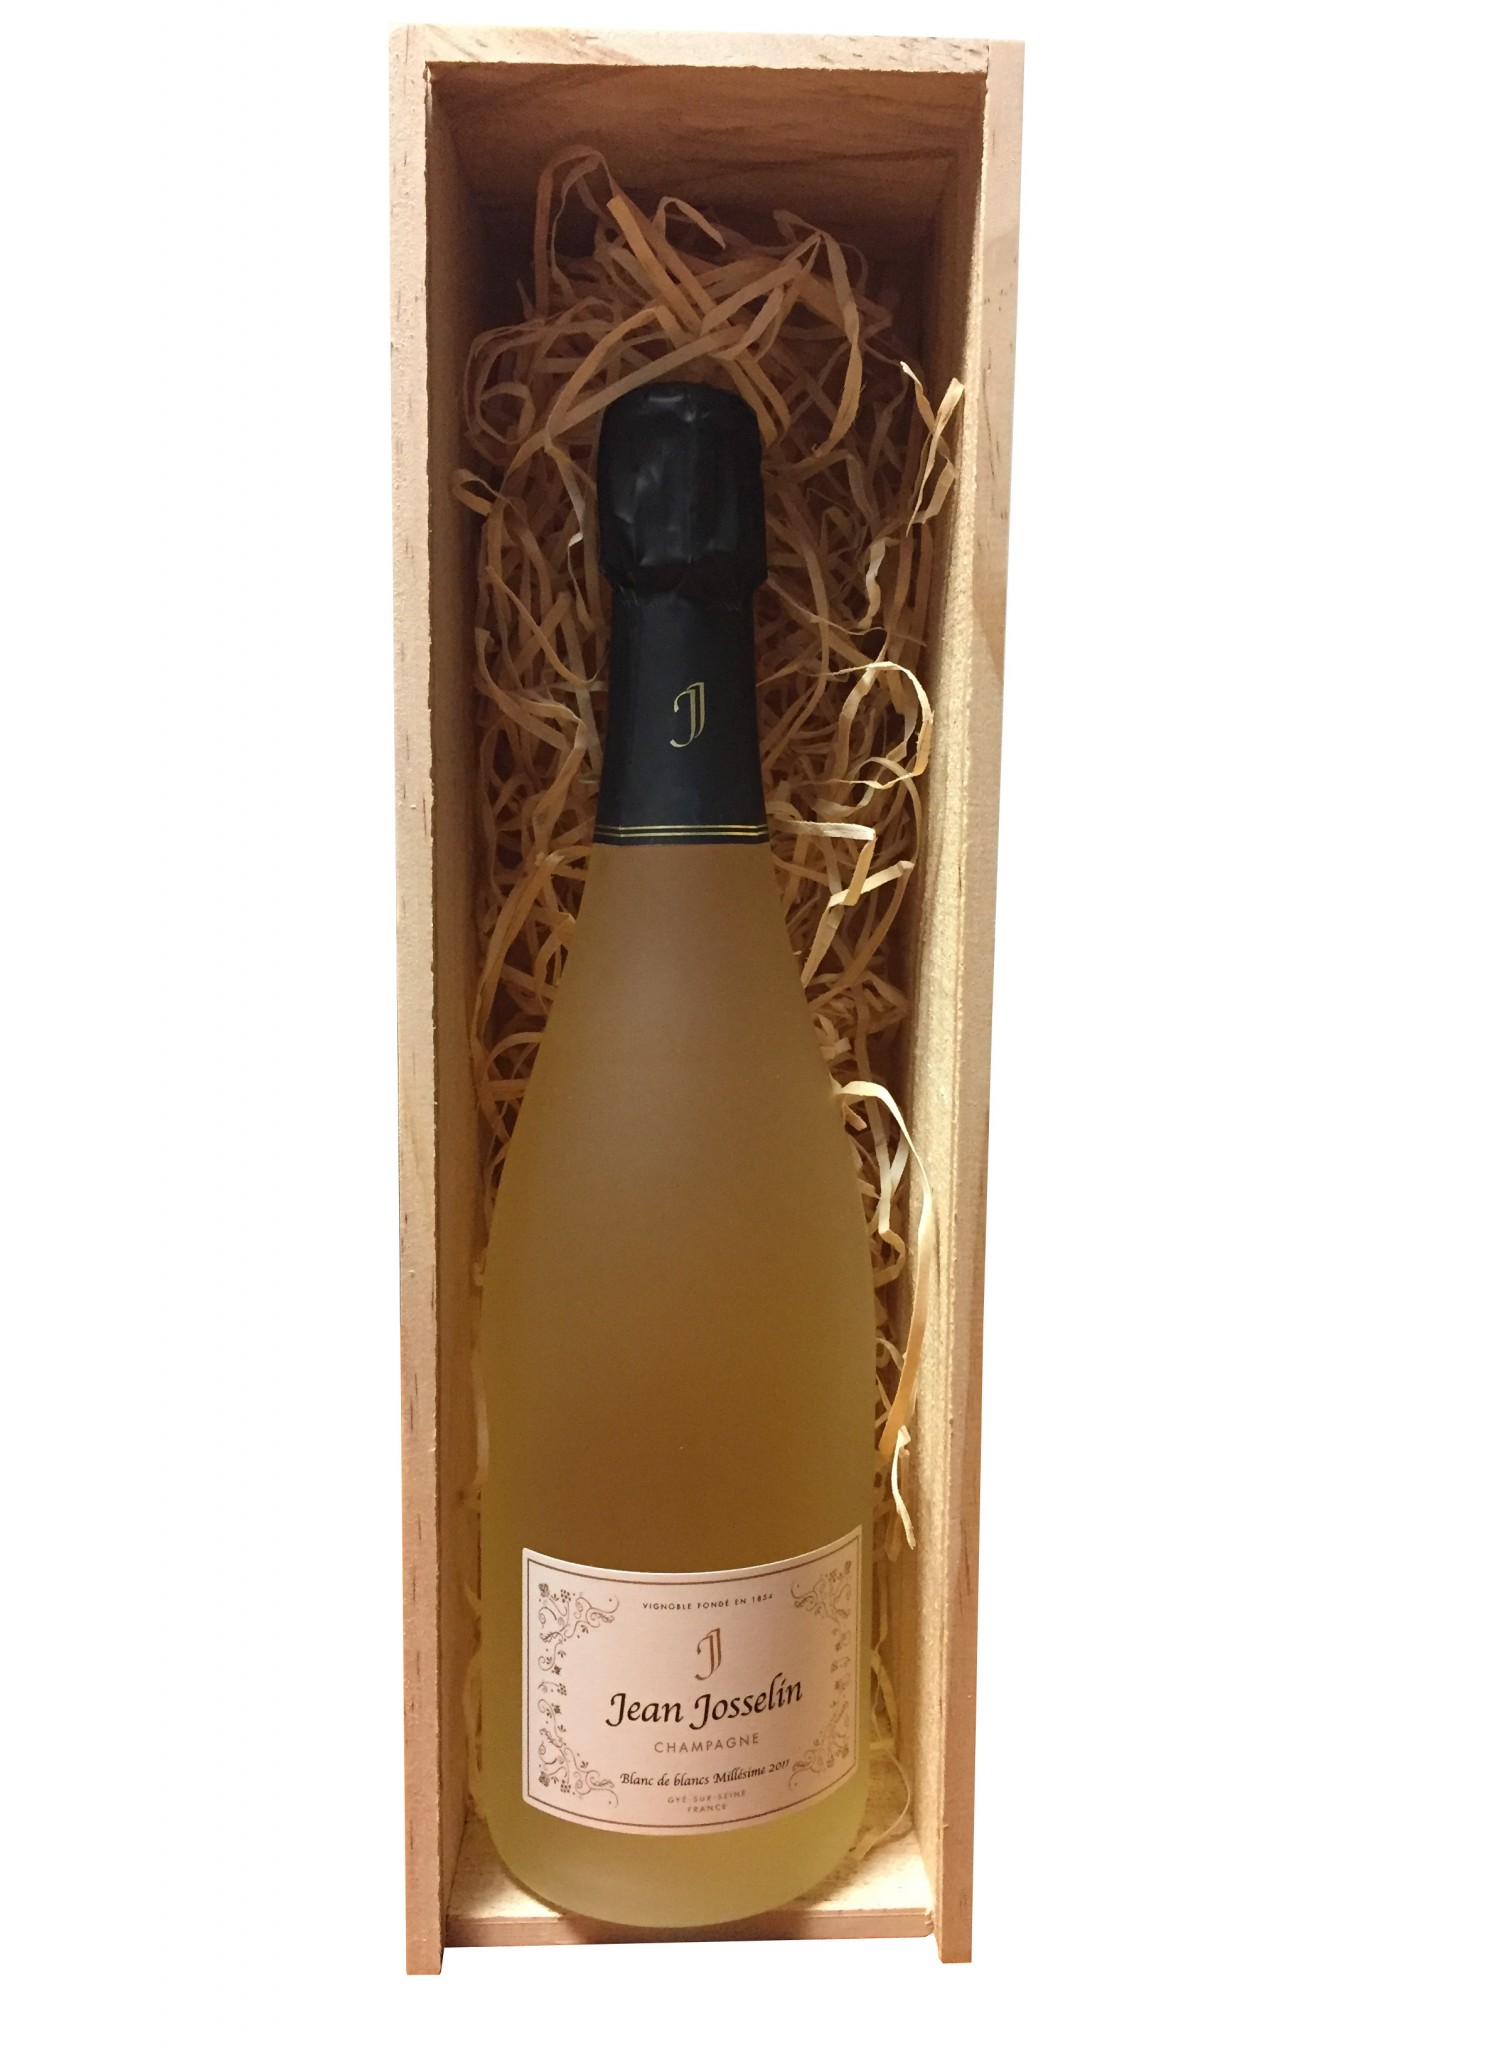 1 bottle jean josselin blanc de blancs millesime 2011 for Belle jardin blanc de blancs